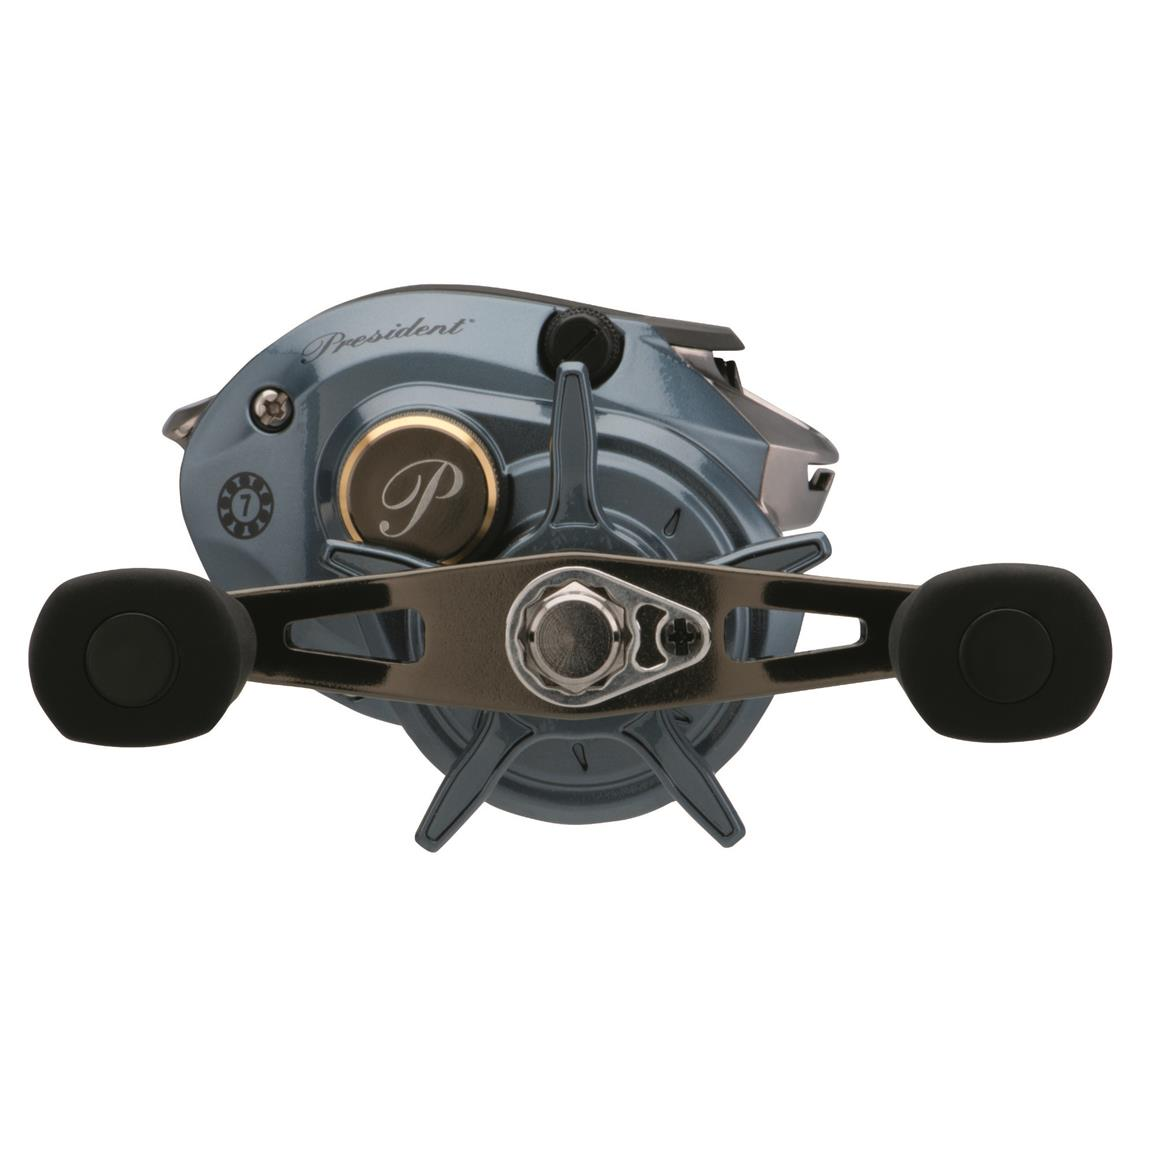 Pflueger President Low Profile Baitcasting Fishing Reel